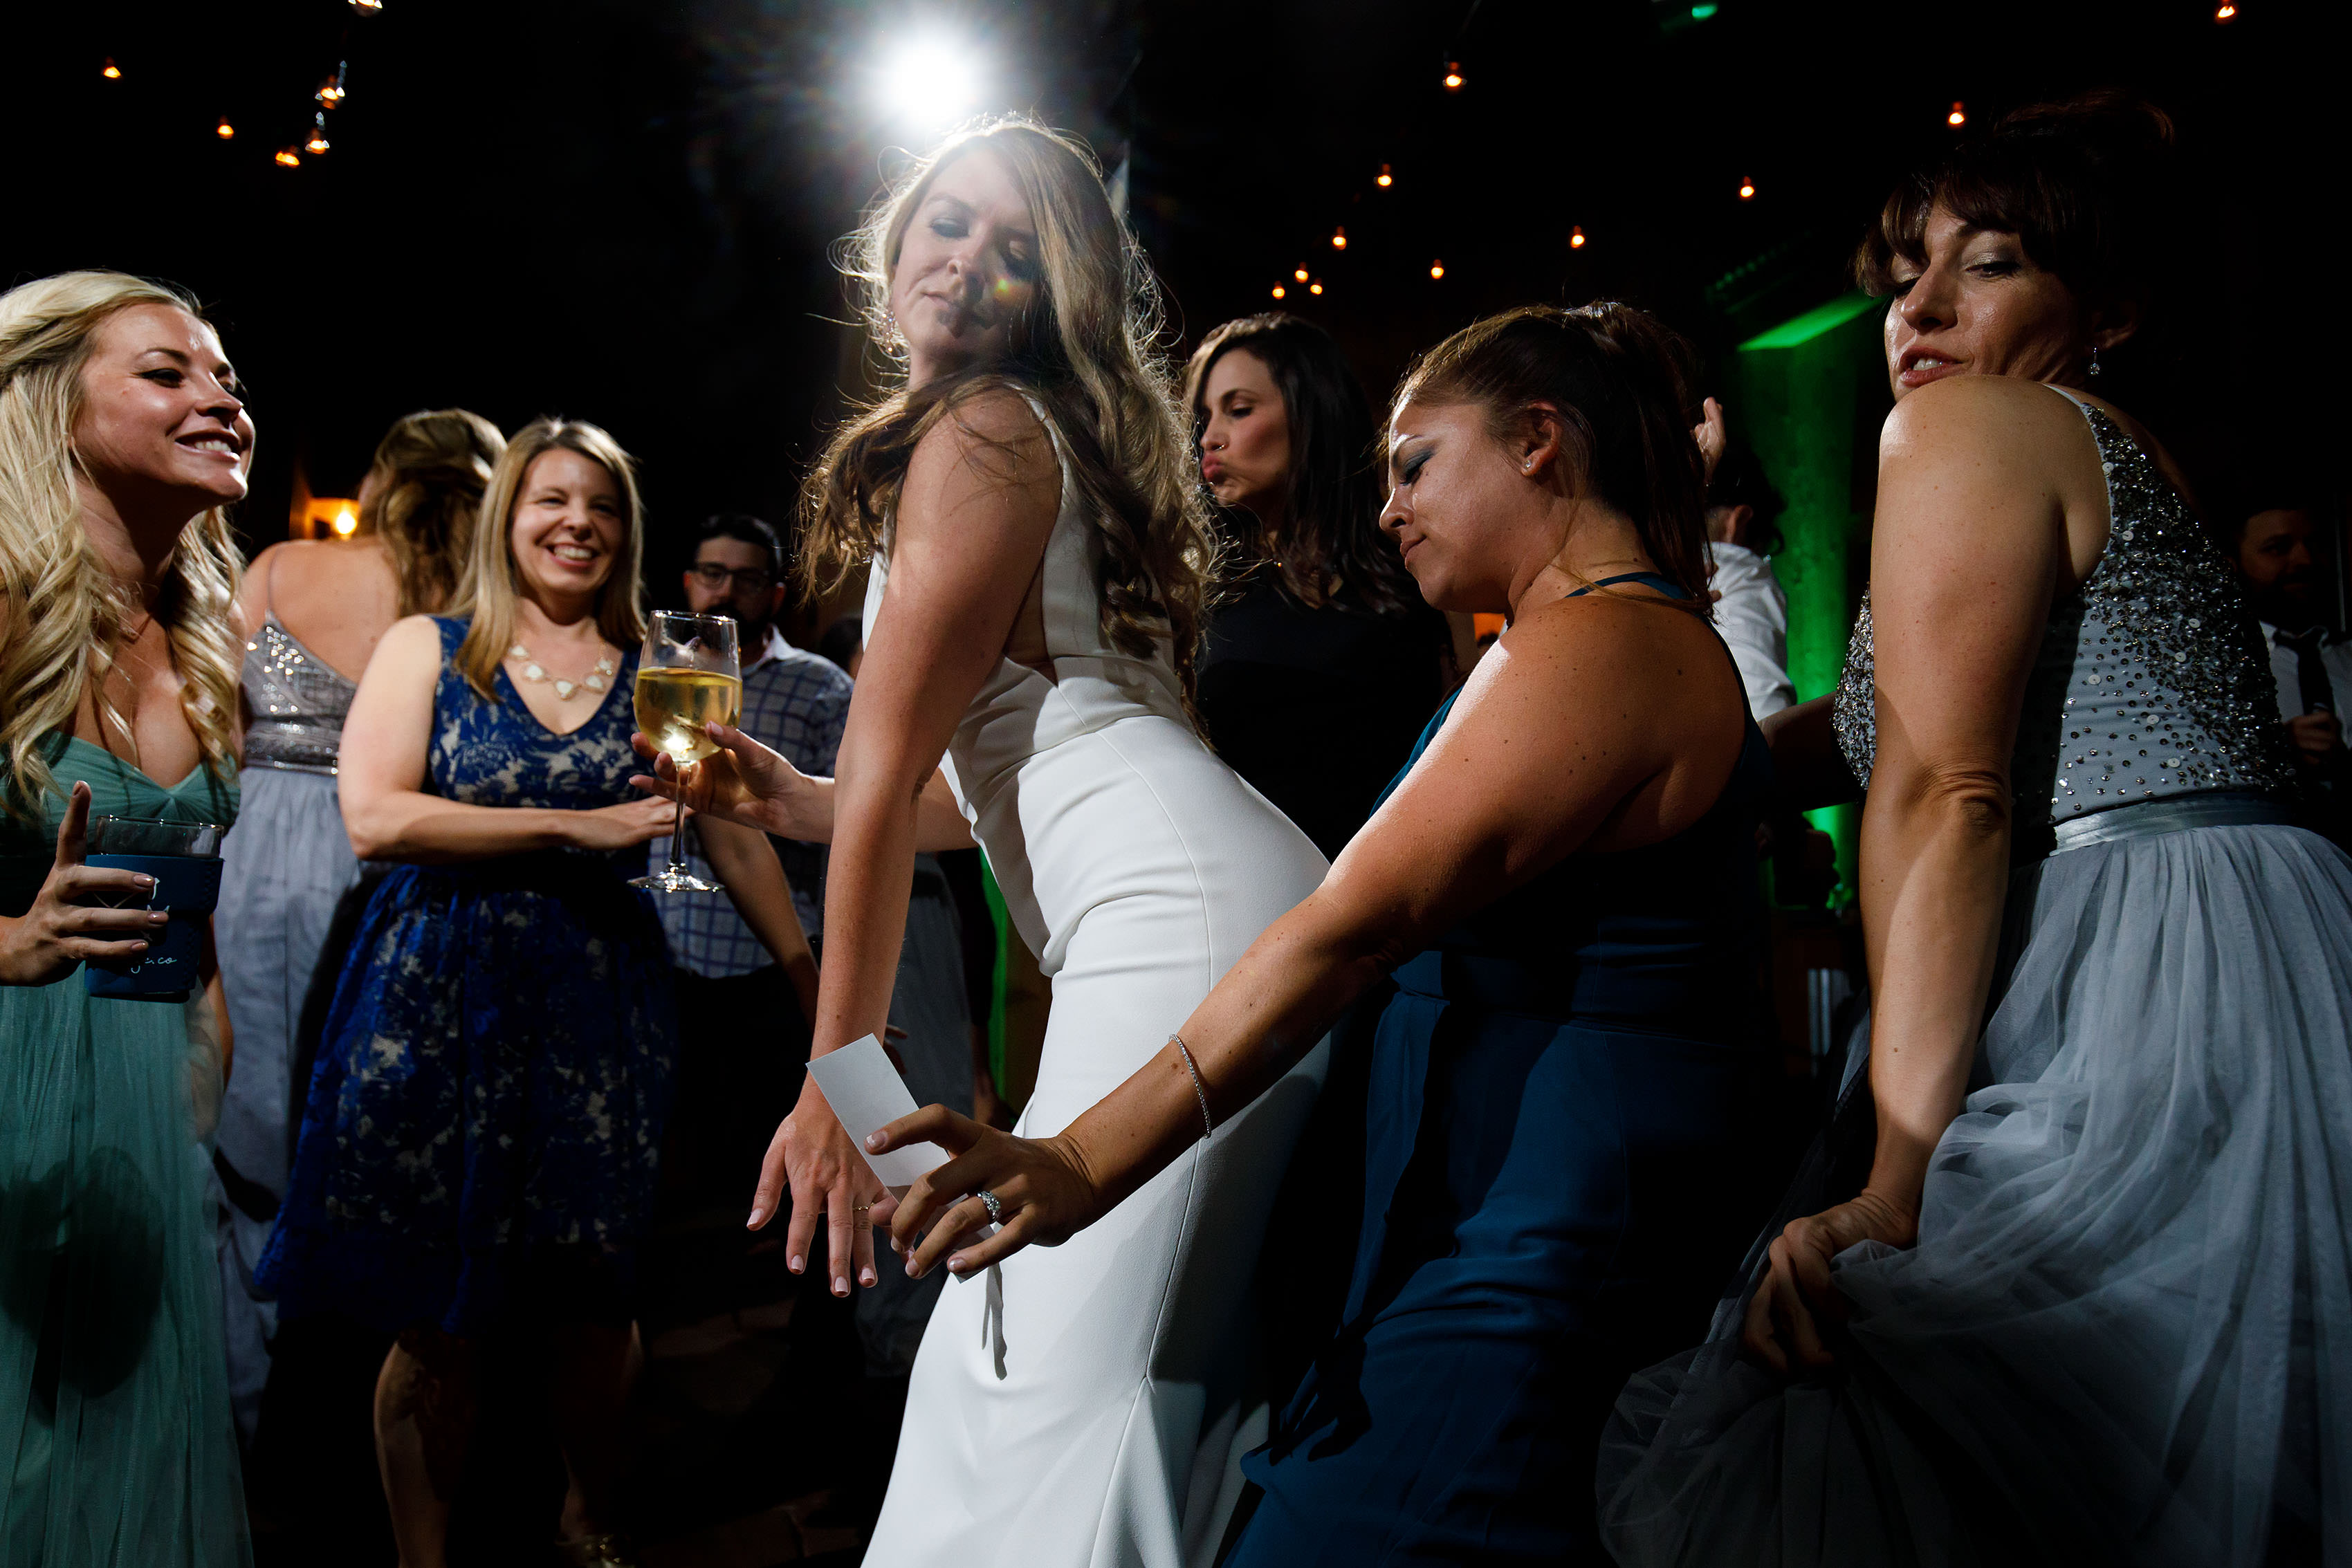 Heather dances with friend during her wedding at TenMile